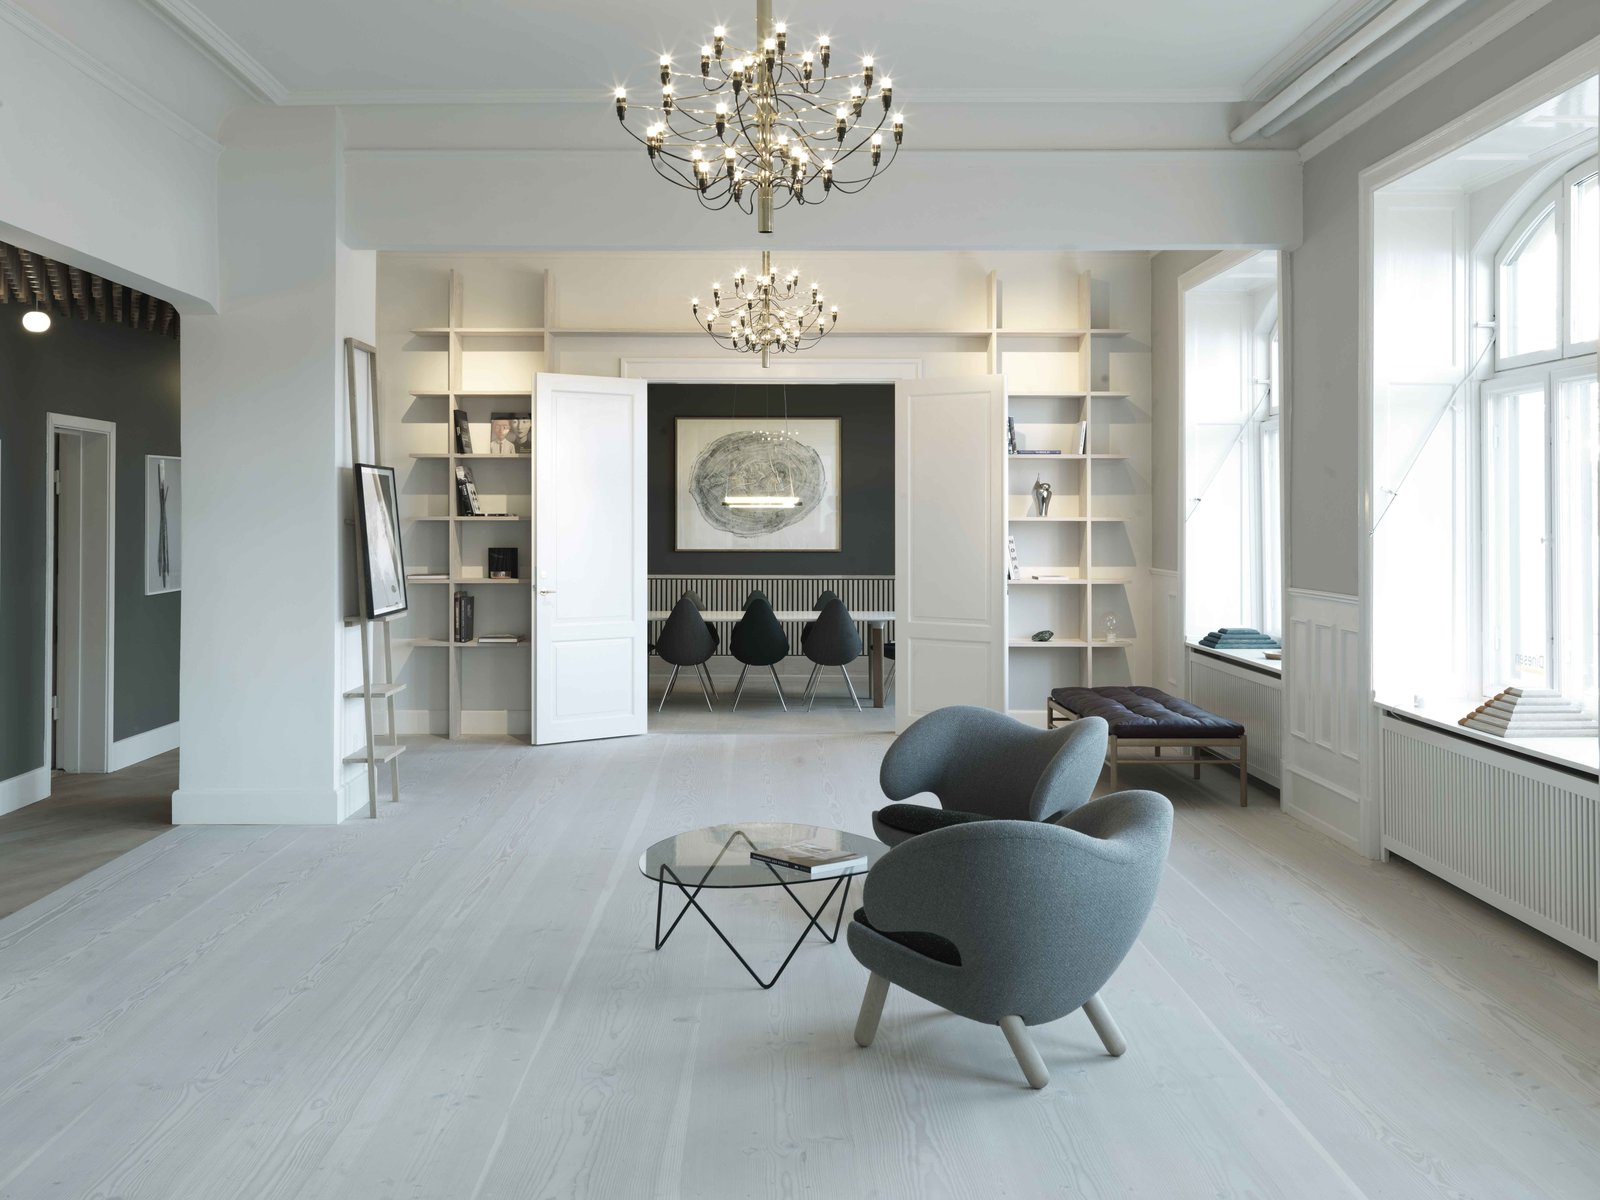 The showroom features distinct rooms adorned with Scandinavian designs. Finn Juhl's Pelican chairs, designed in 1940, create a sitting space.  Photo 6 of 6 in Generations-Old Danish Wood Firm Dinesen Unveils Spiffy Copenhagen Showroom